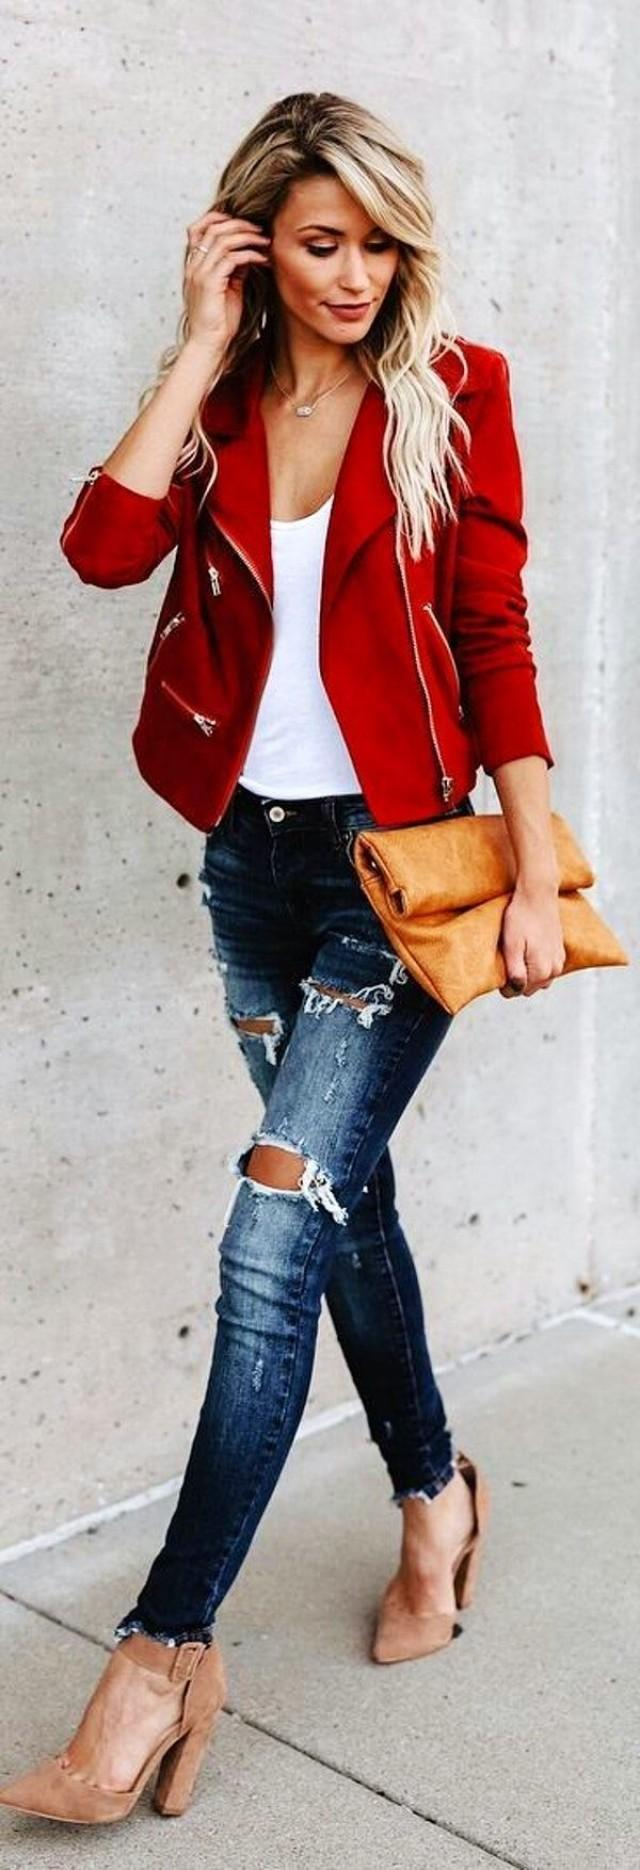 cbff04e6745 13 Quick Tips For Dressing Up Your Jeans